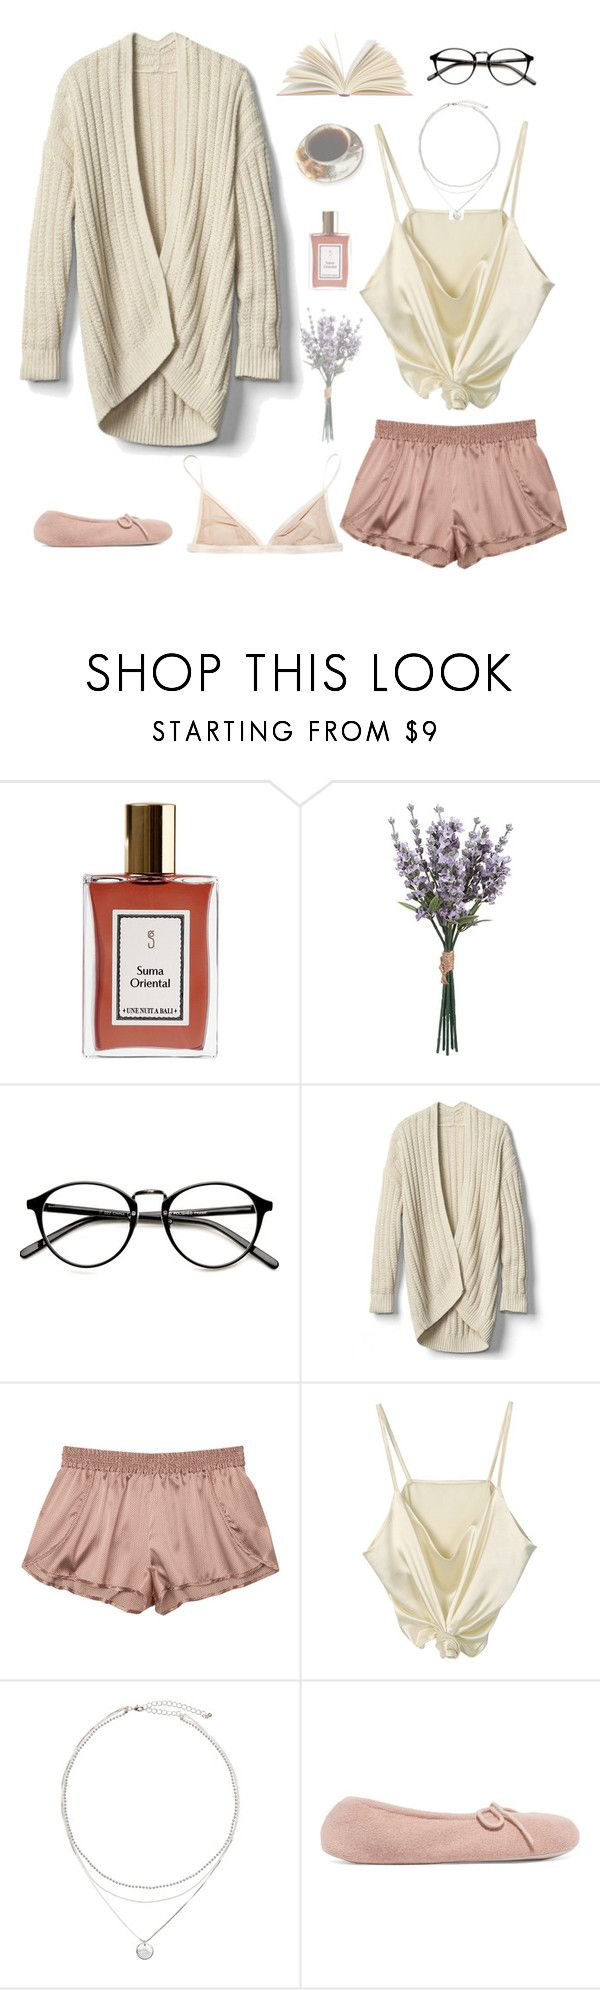 """""""My lazy Sunday"""" by minorseventh ❤ liked on Polyvore featuring Gap, STELLA McCARTNEY and Madeleine Thompson"""